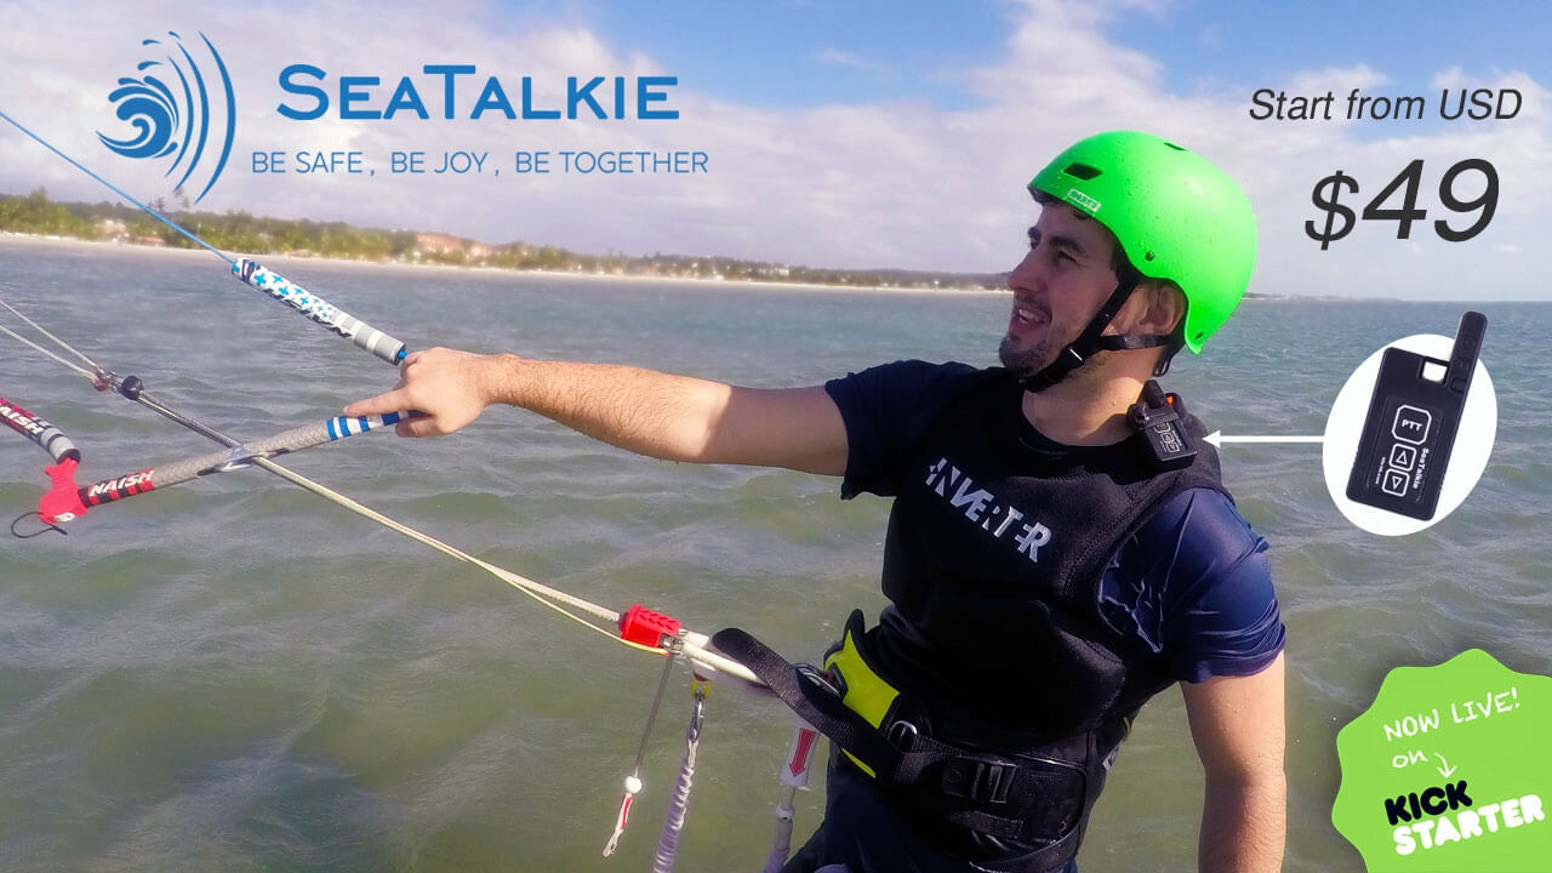 SeaTalkie is an innovative waterproof walkie talkie designed for water sports. 